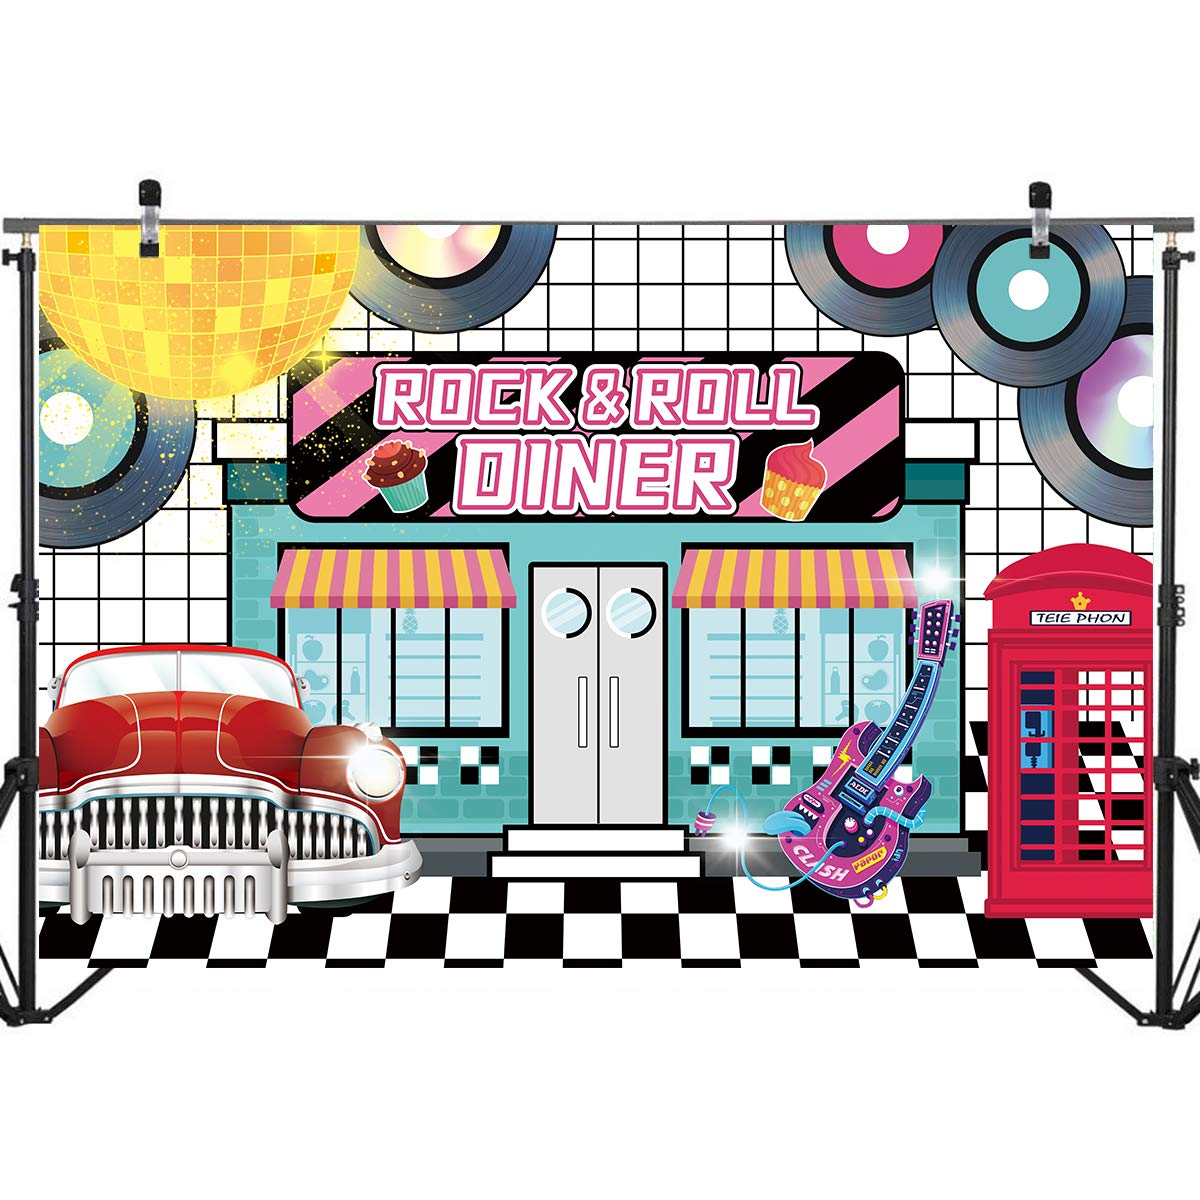 50's Theme Party Decor Happy Birthday Backdrop,Retro Rock and Roll Backdrop Background Banner 1950's Party Decorations Birthday Baby Shower Party Supplies 71 x 49 inch